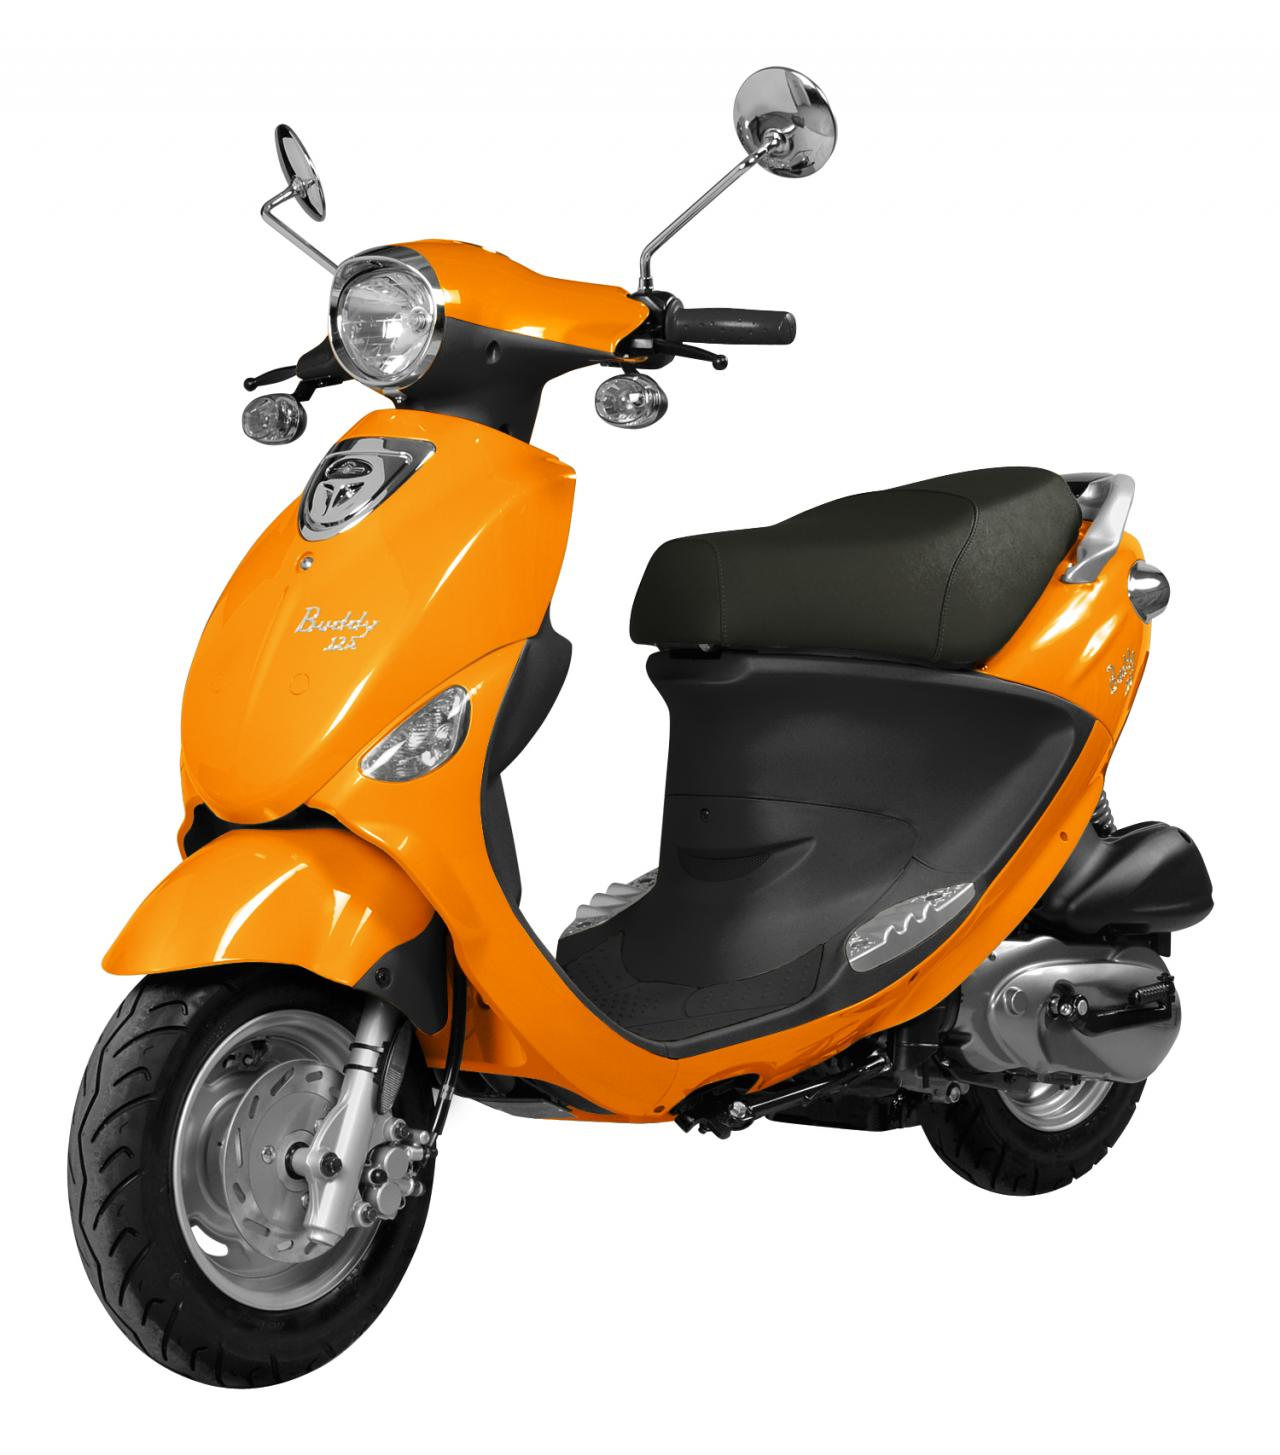 Routes Bicycle Tours and Rentals Genuine Buddy Scooter 50cc Rental Santa Fe New Mexico